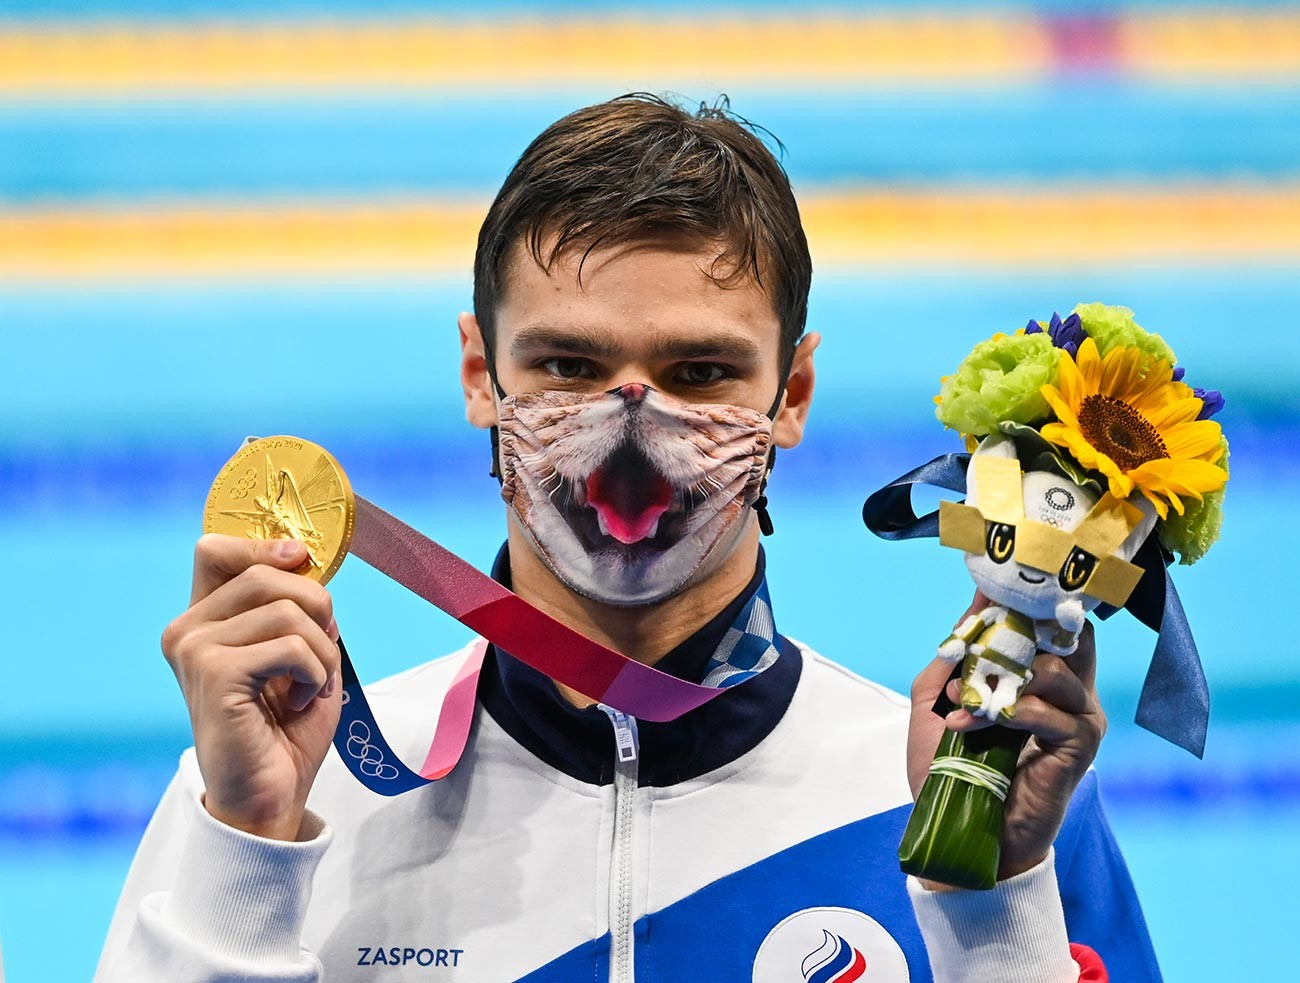 Evgeny Rylov of Team ROC poses with his gold medal for the Men's 200m Backstroke Final of swimming during the Tokyo 2020 Olympic Games at Tokyo Aquatics Centre in Tokyo, Japan on July 30, 2021